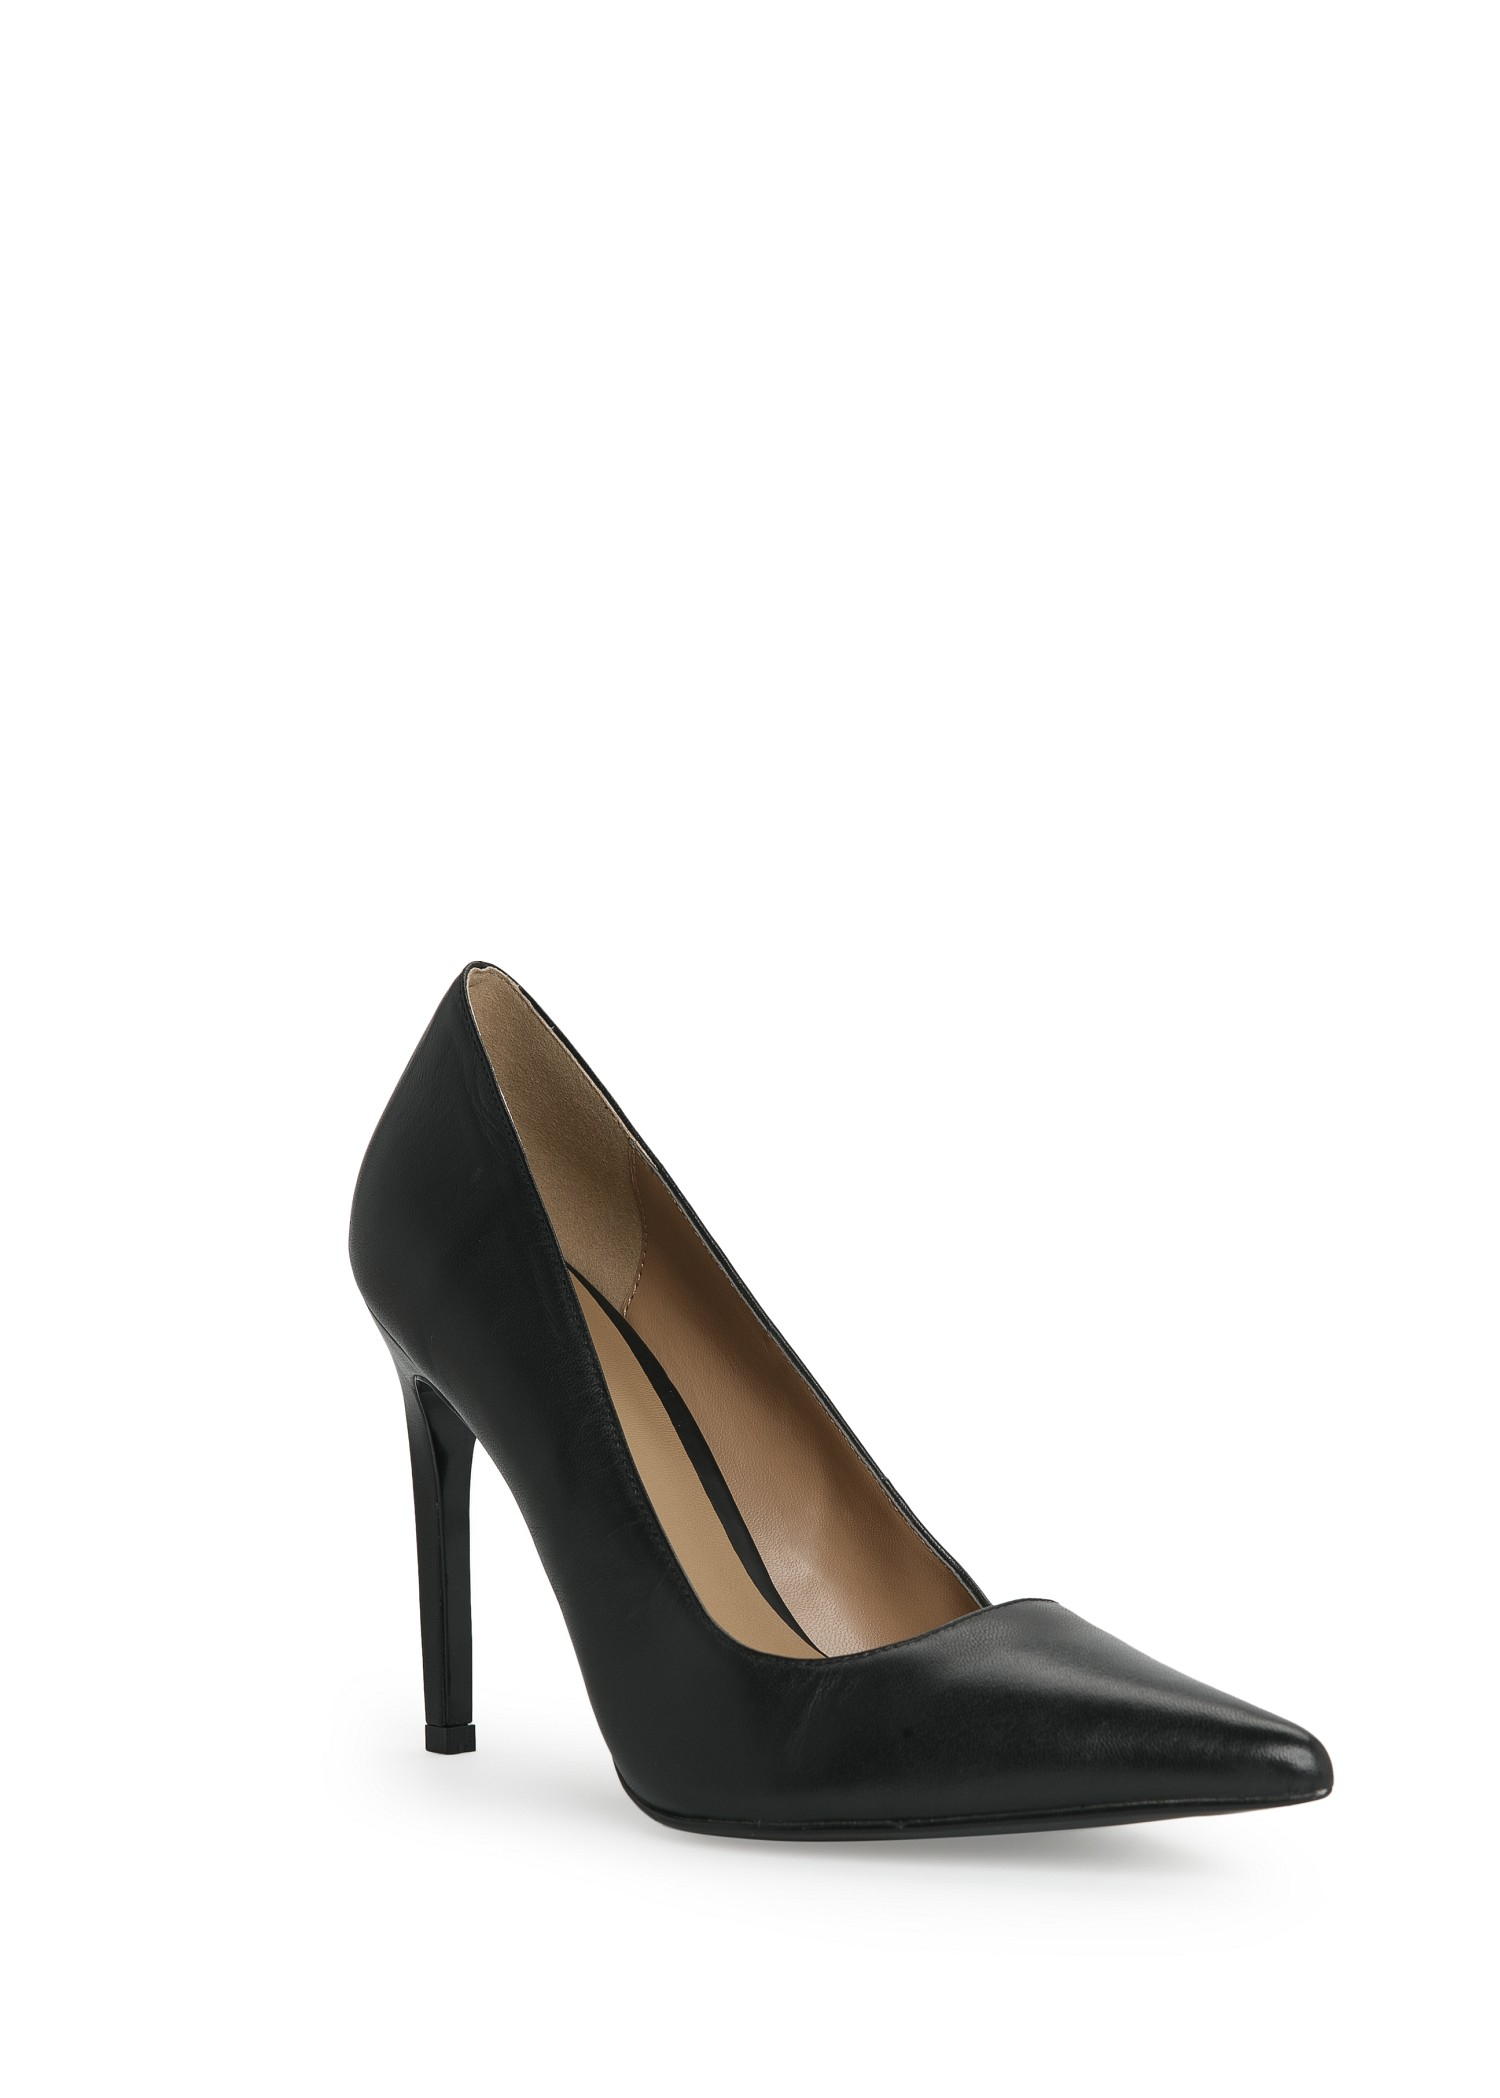 Mango Leather Stiletto Shoes in Black